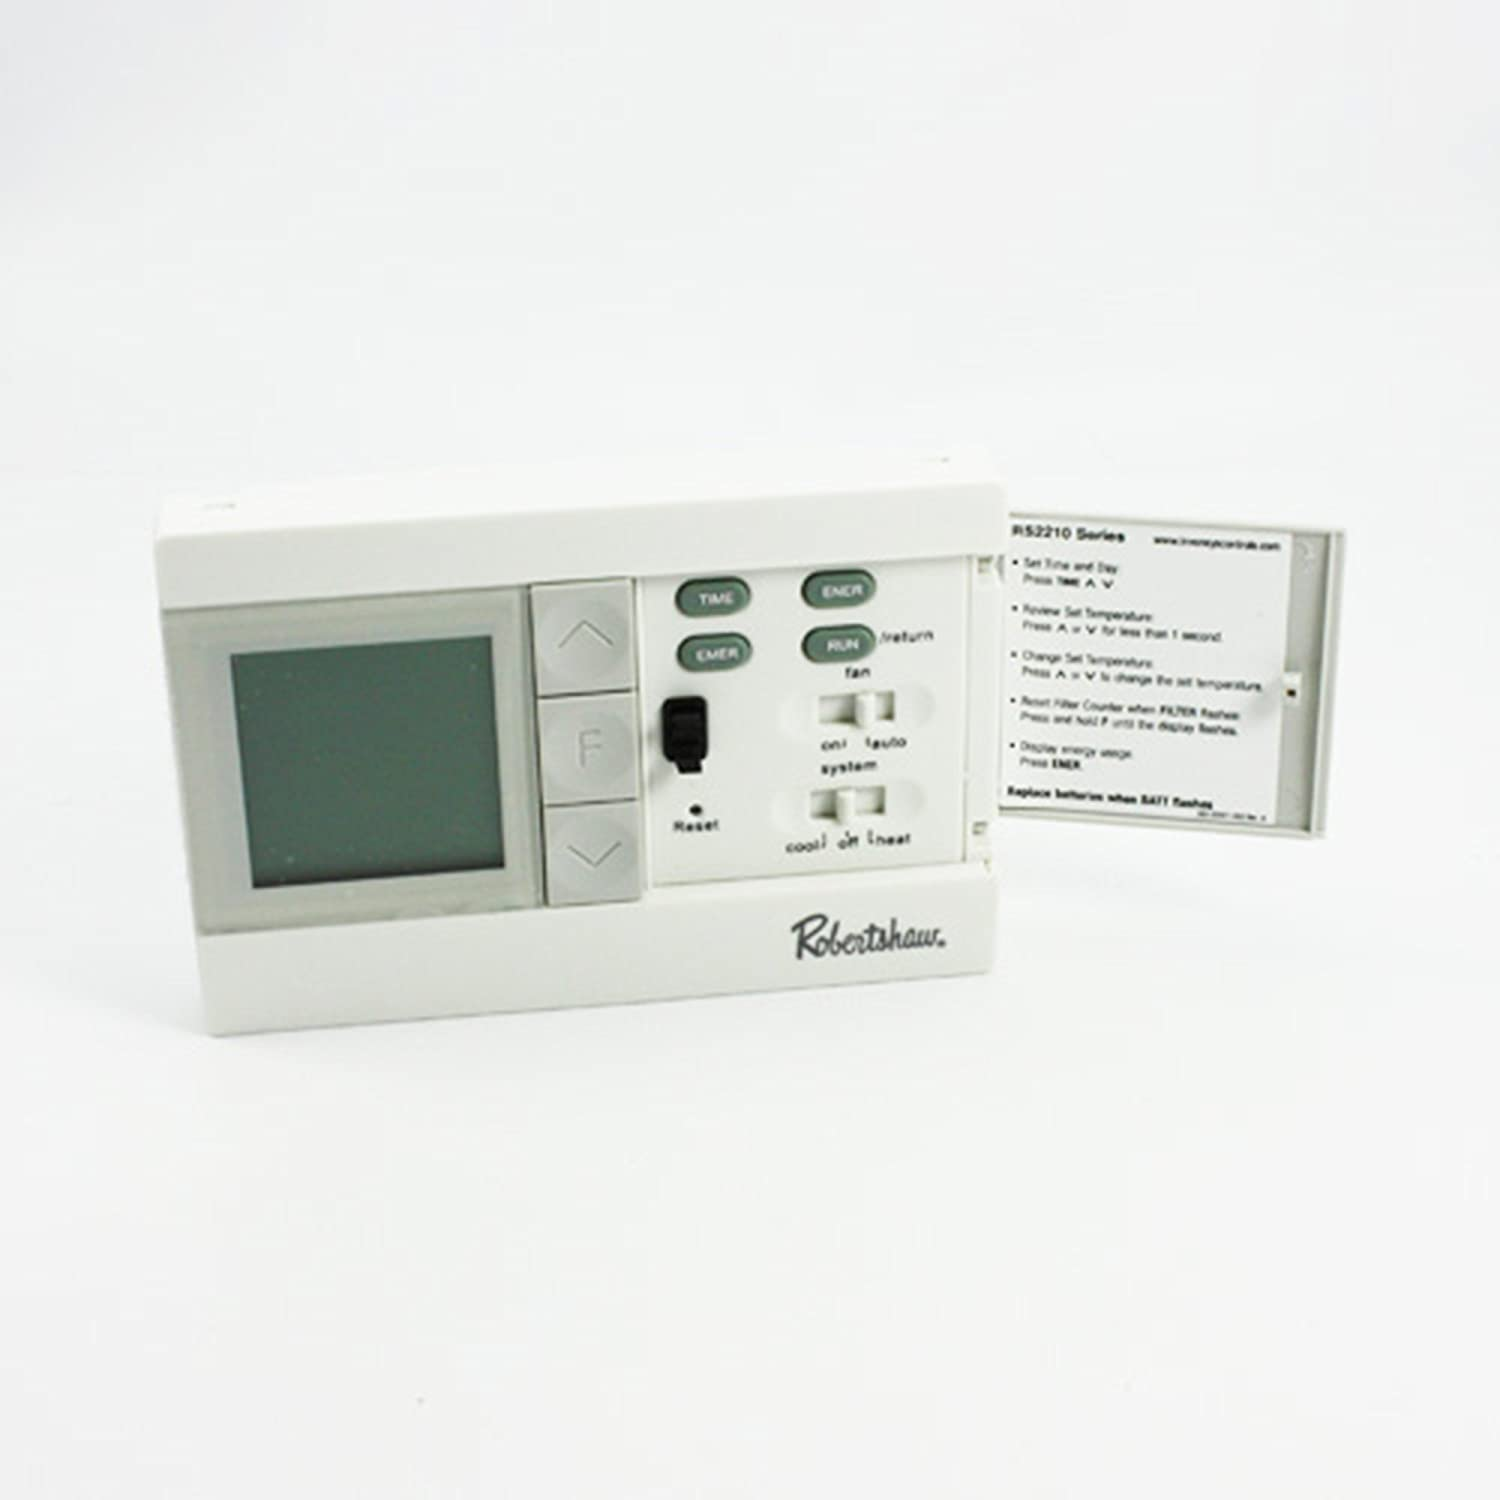 PS2210 2 Heat/1 Cool Digital Non-Programmable Thermostat - Nonprogrammable Household Thermostats - Amazon.com